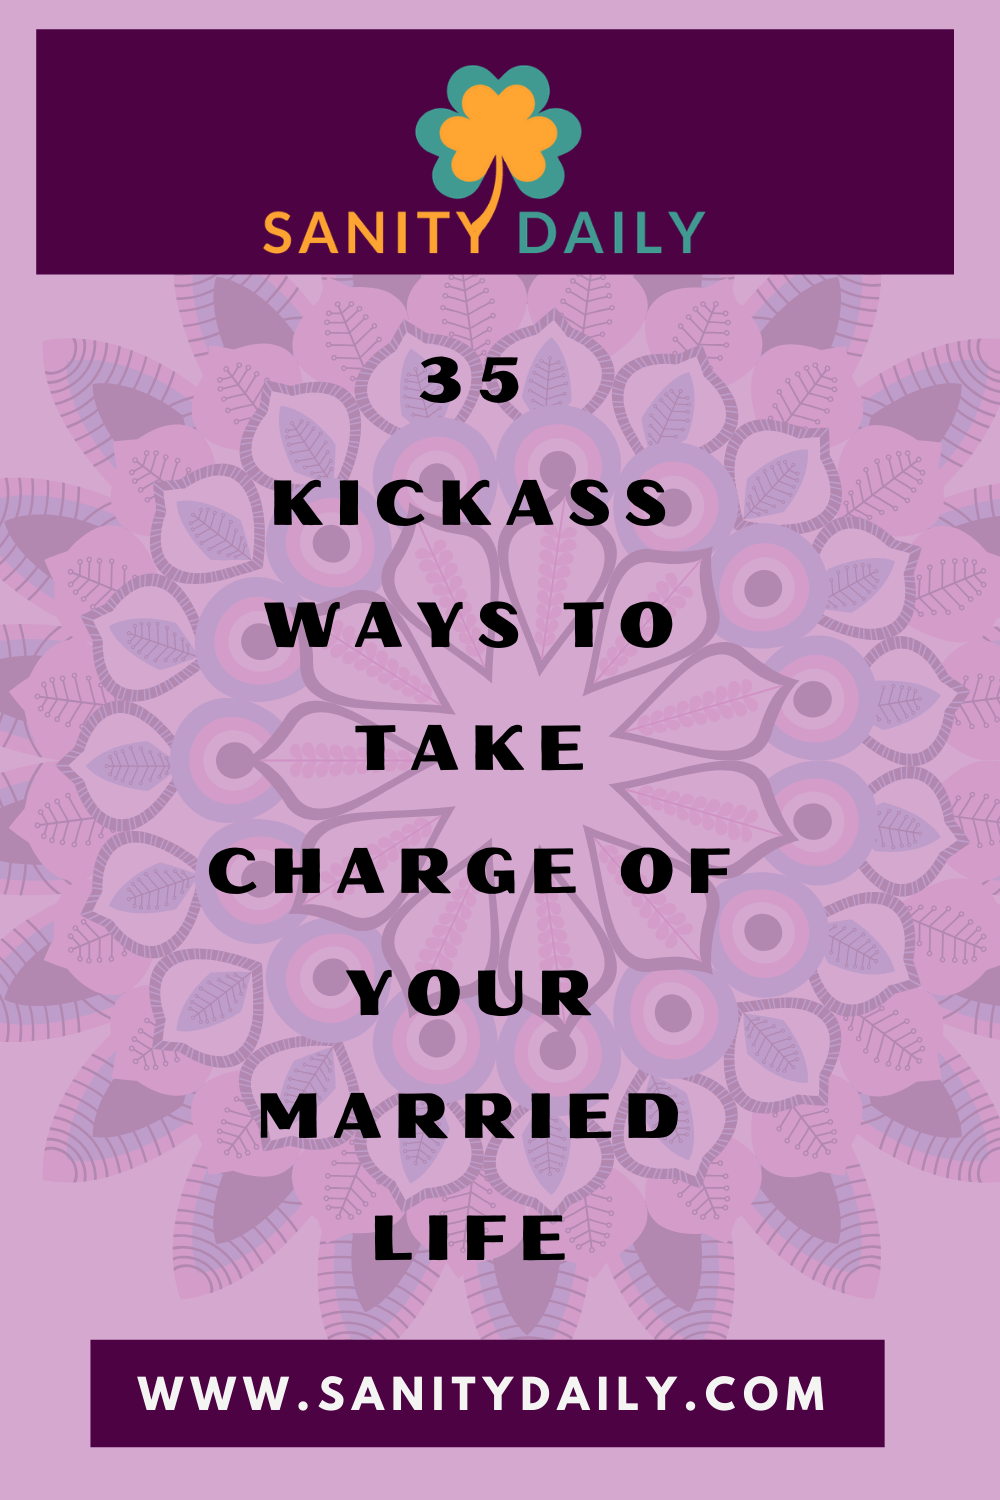 Taking charge of your life as a married woman